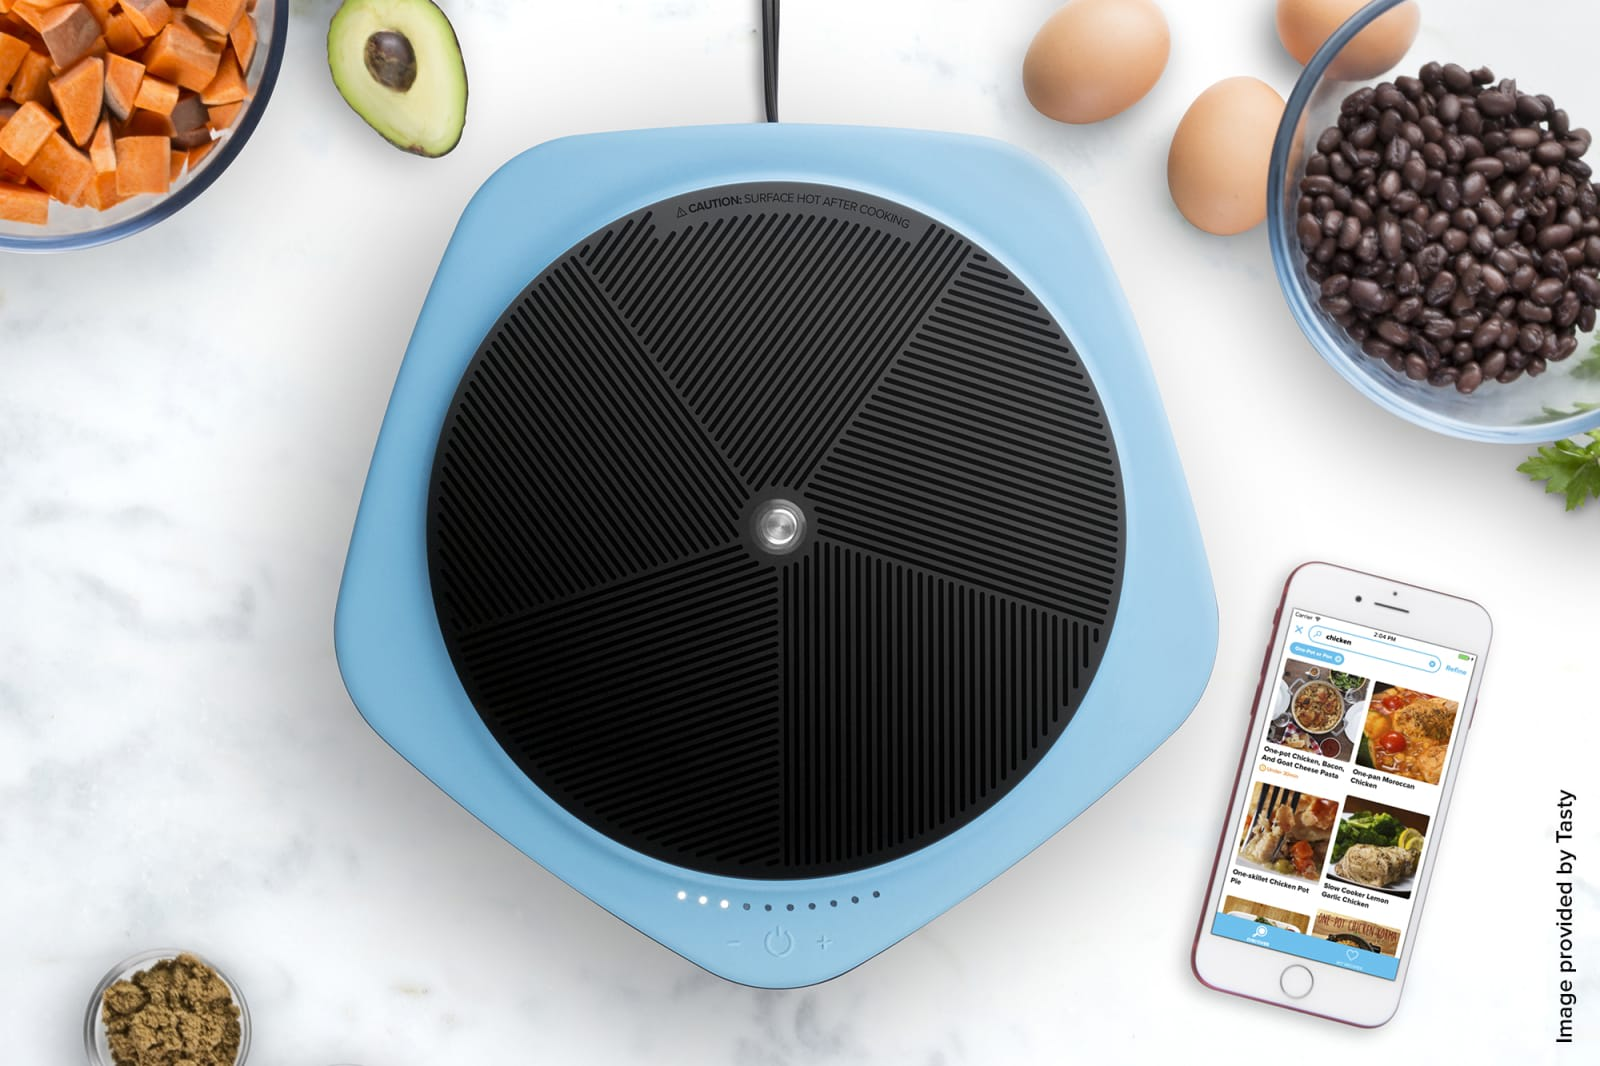 Viral cooking videos control buzzfeeds 150 bluetooth hot plate buzzfeed tasty forumfinder Image collections